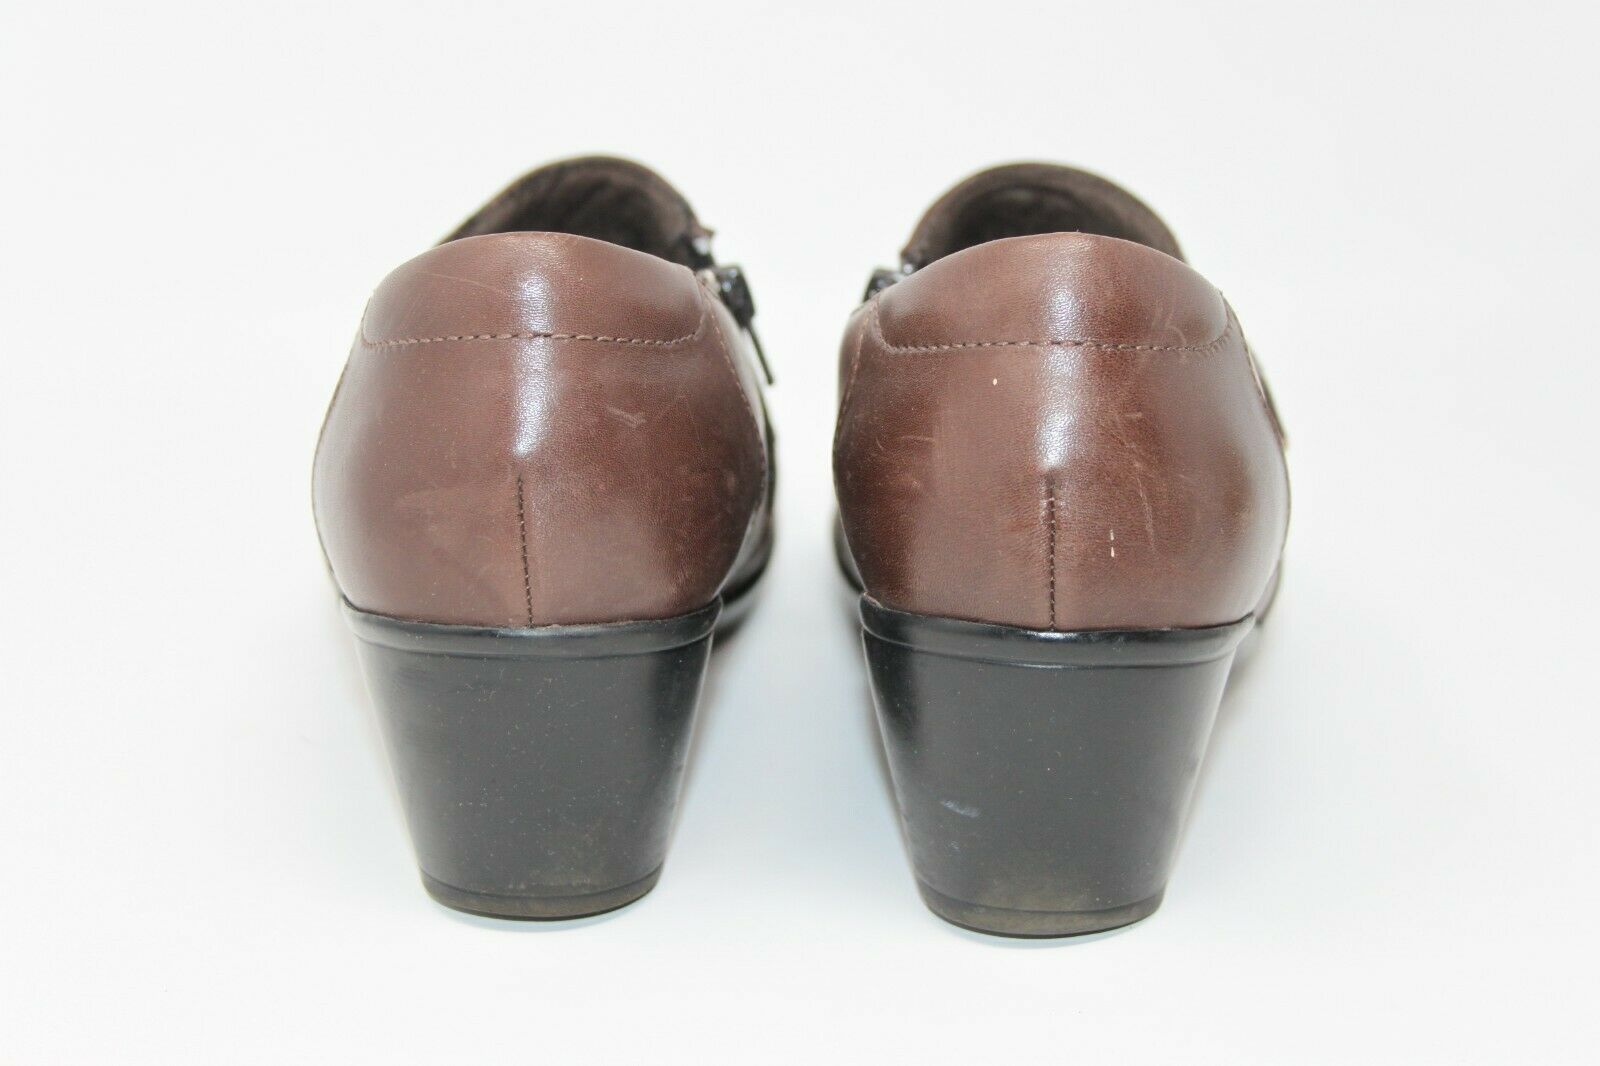 Clarks Size 9.5 M Bendables 62938 Clogs Shoes Brown Leather Zip Size Mules